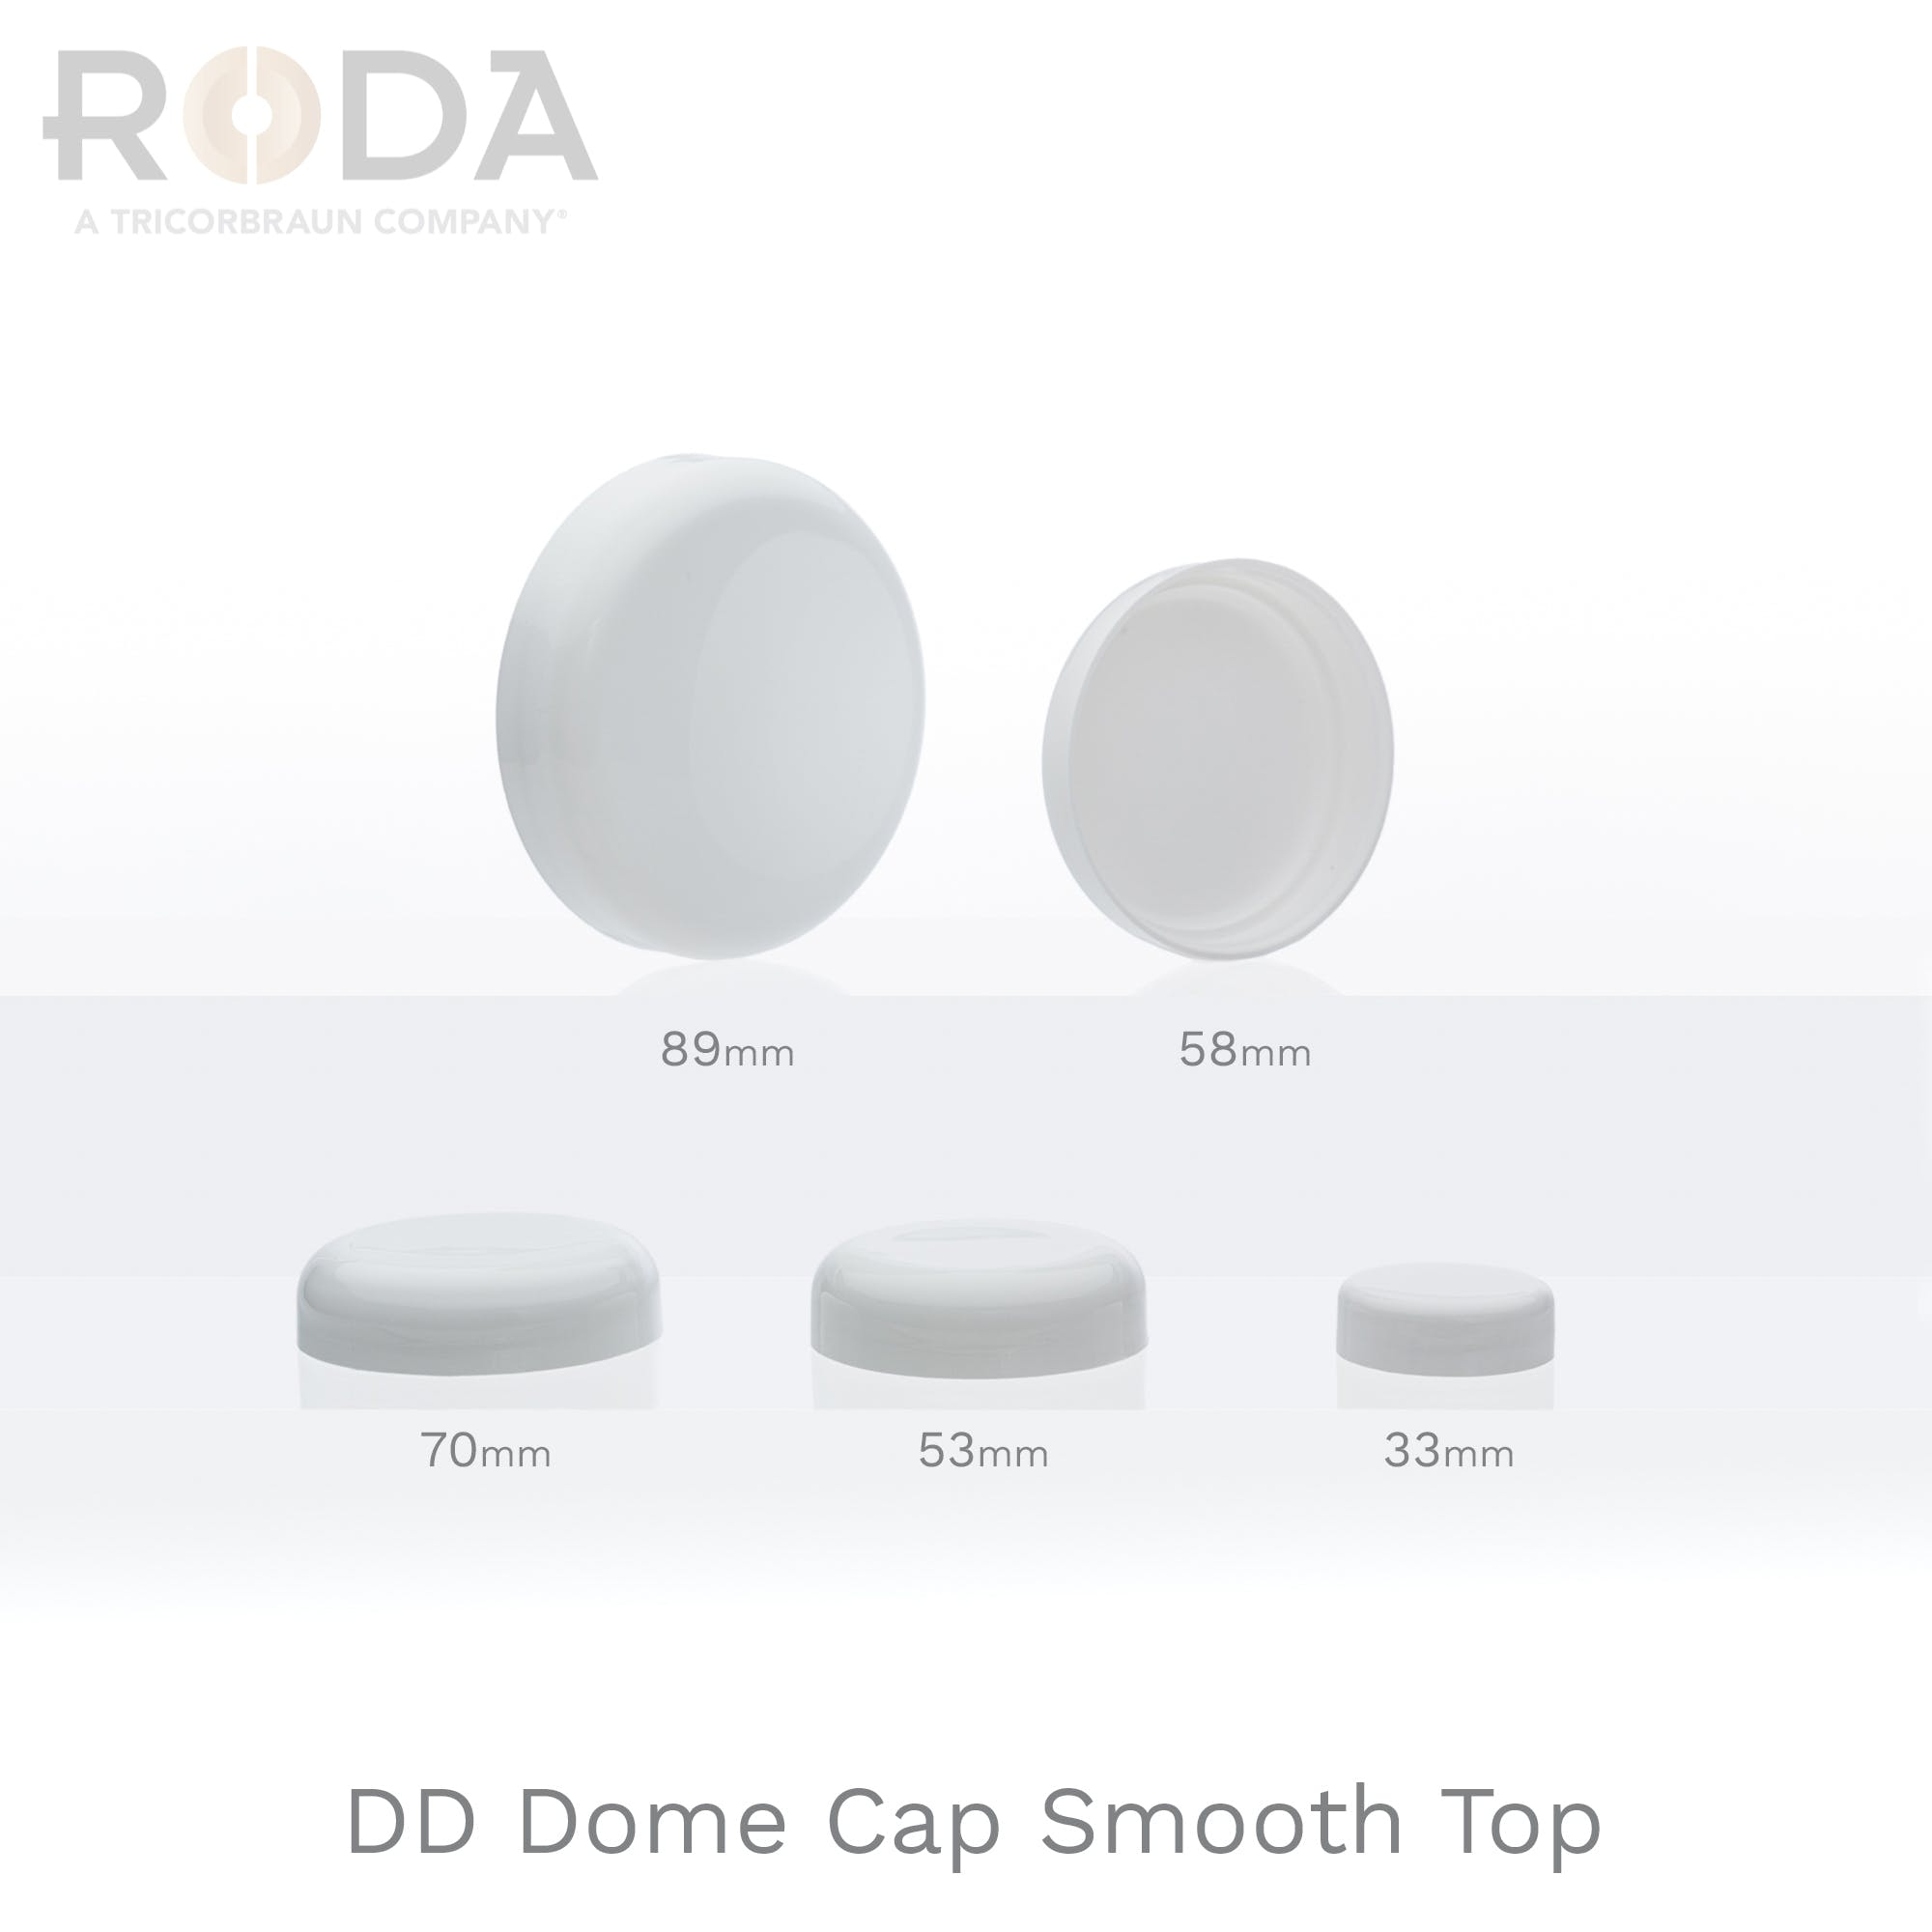 DD Dome Cap Smooth Top